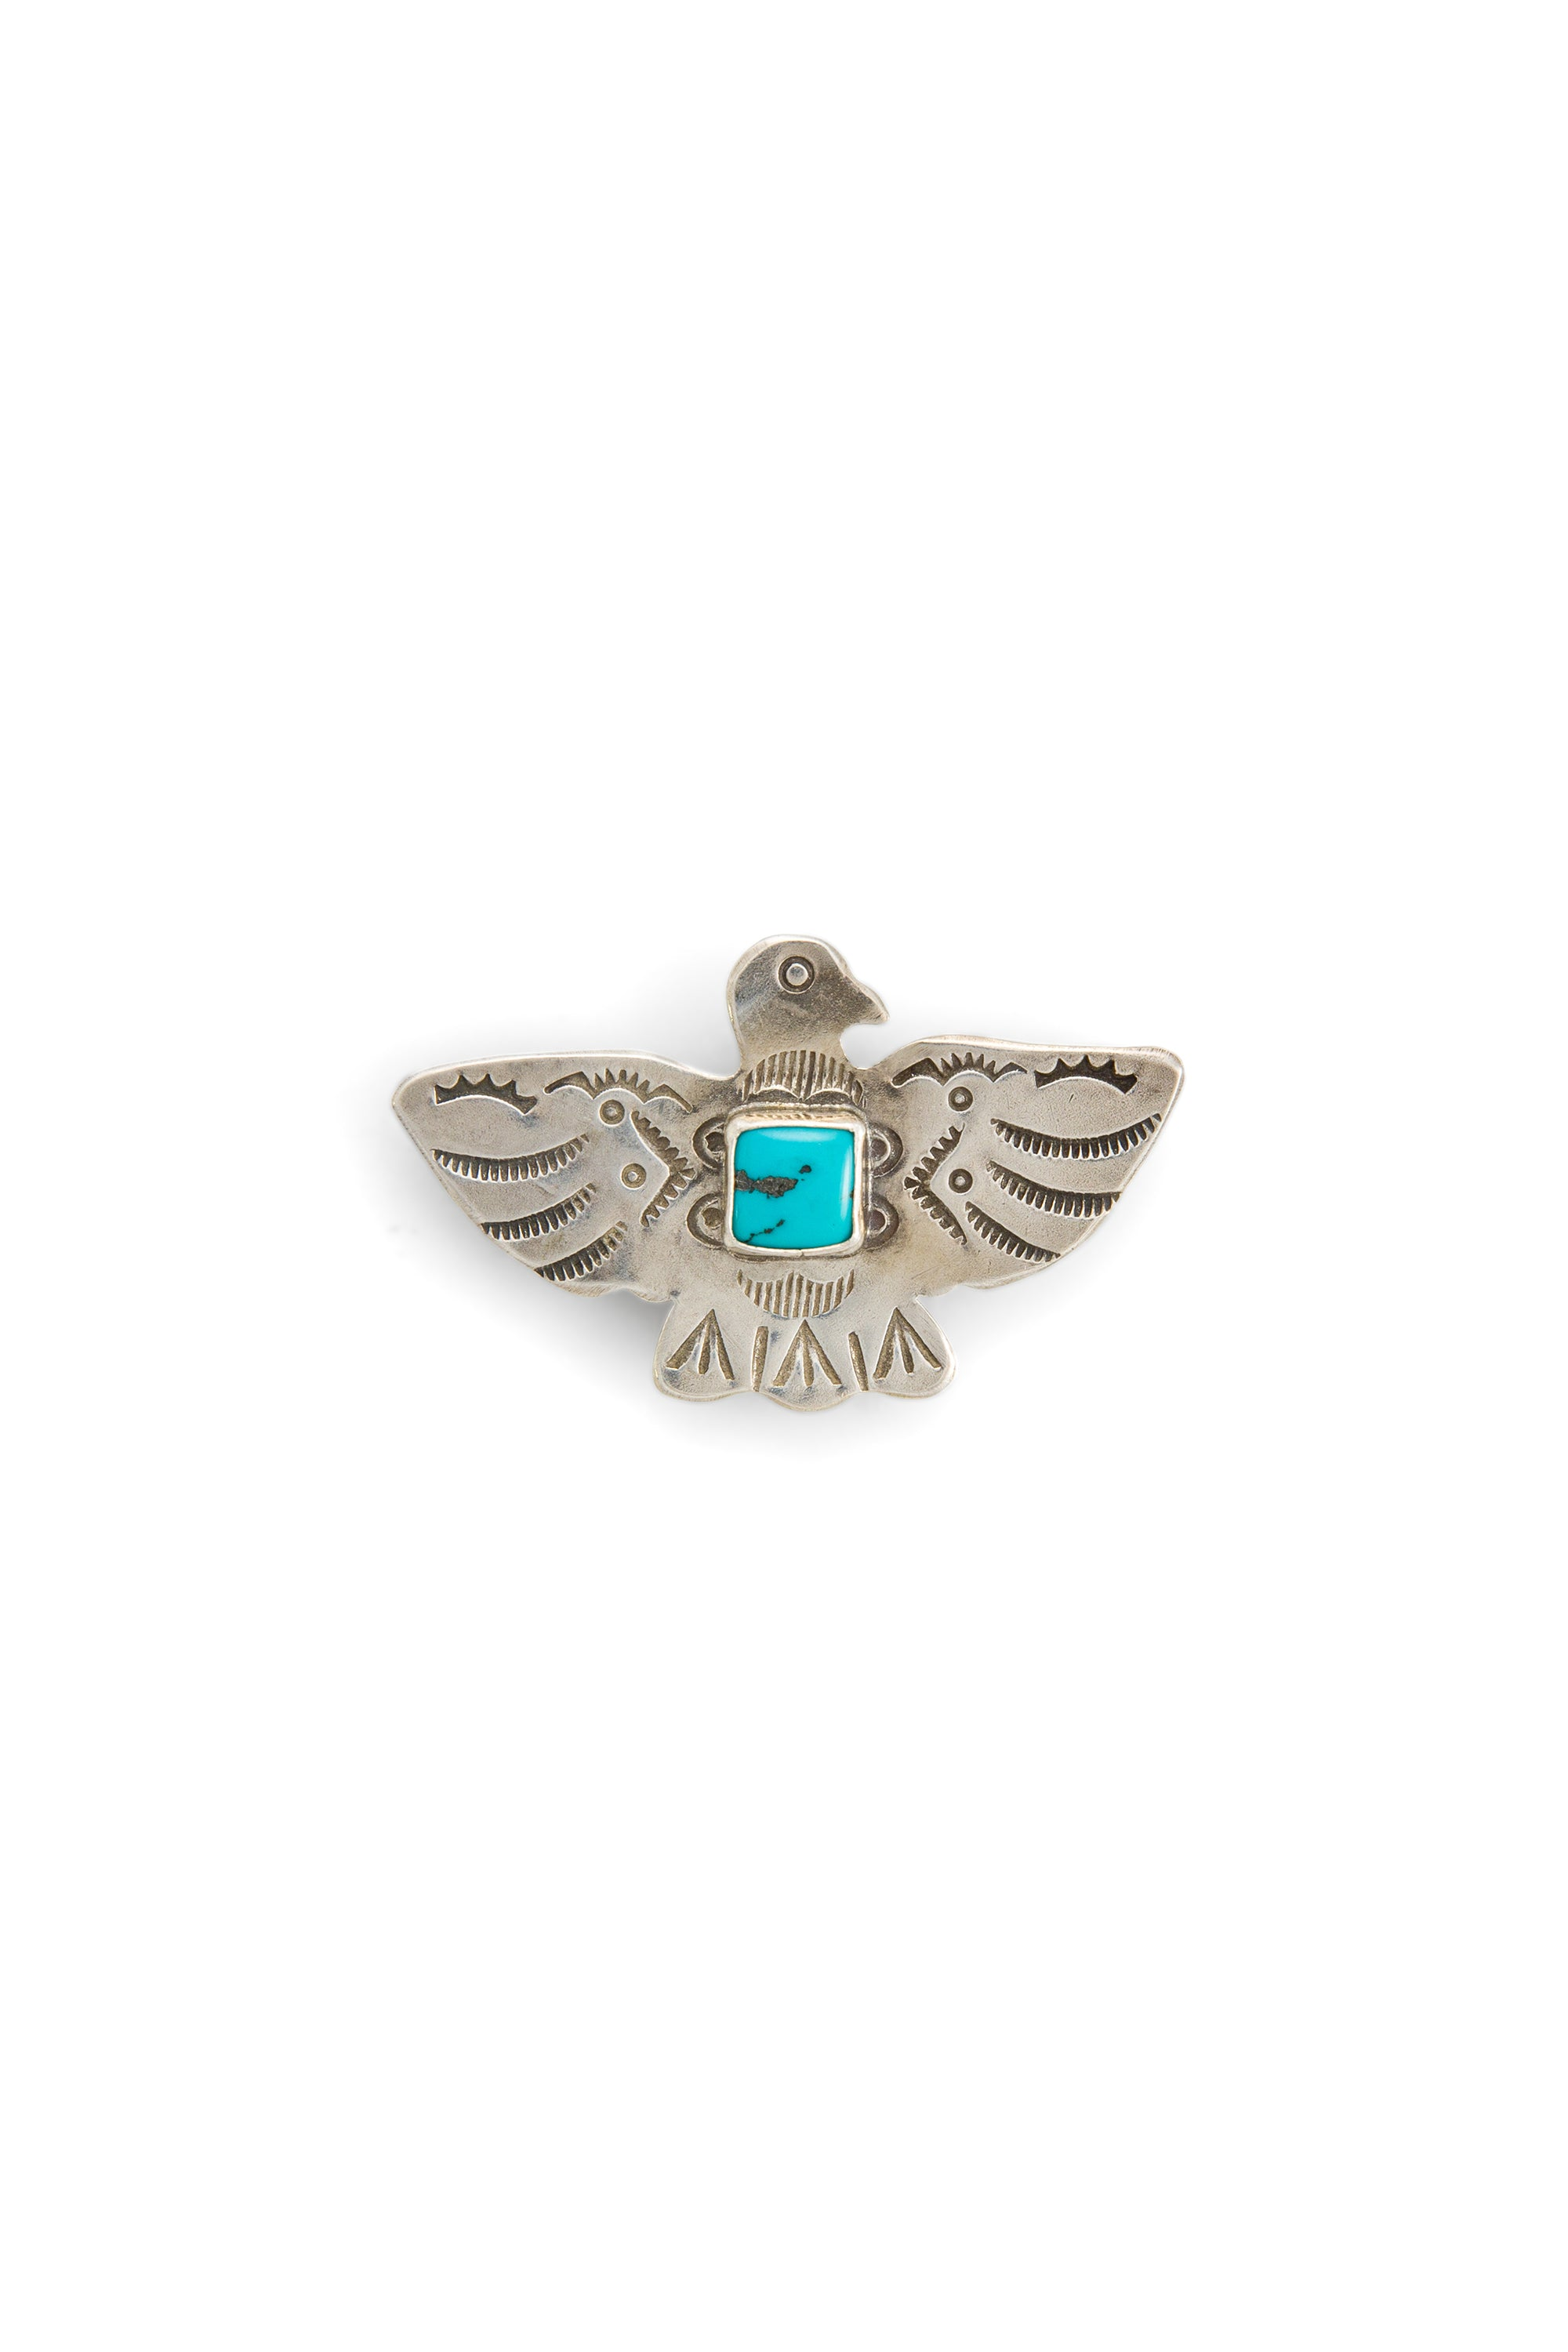 Pin, Collection, Thunderbird, Little Wing